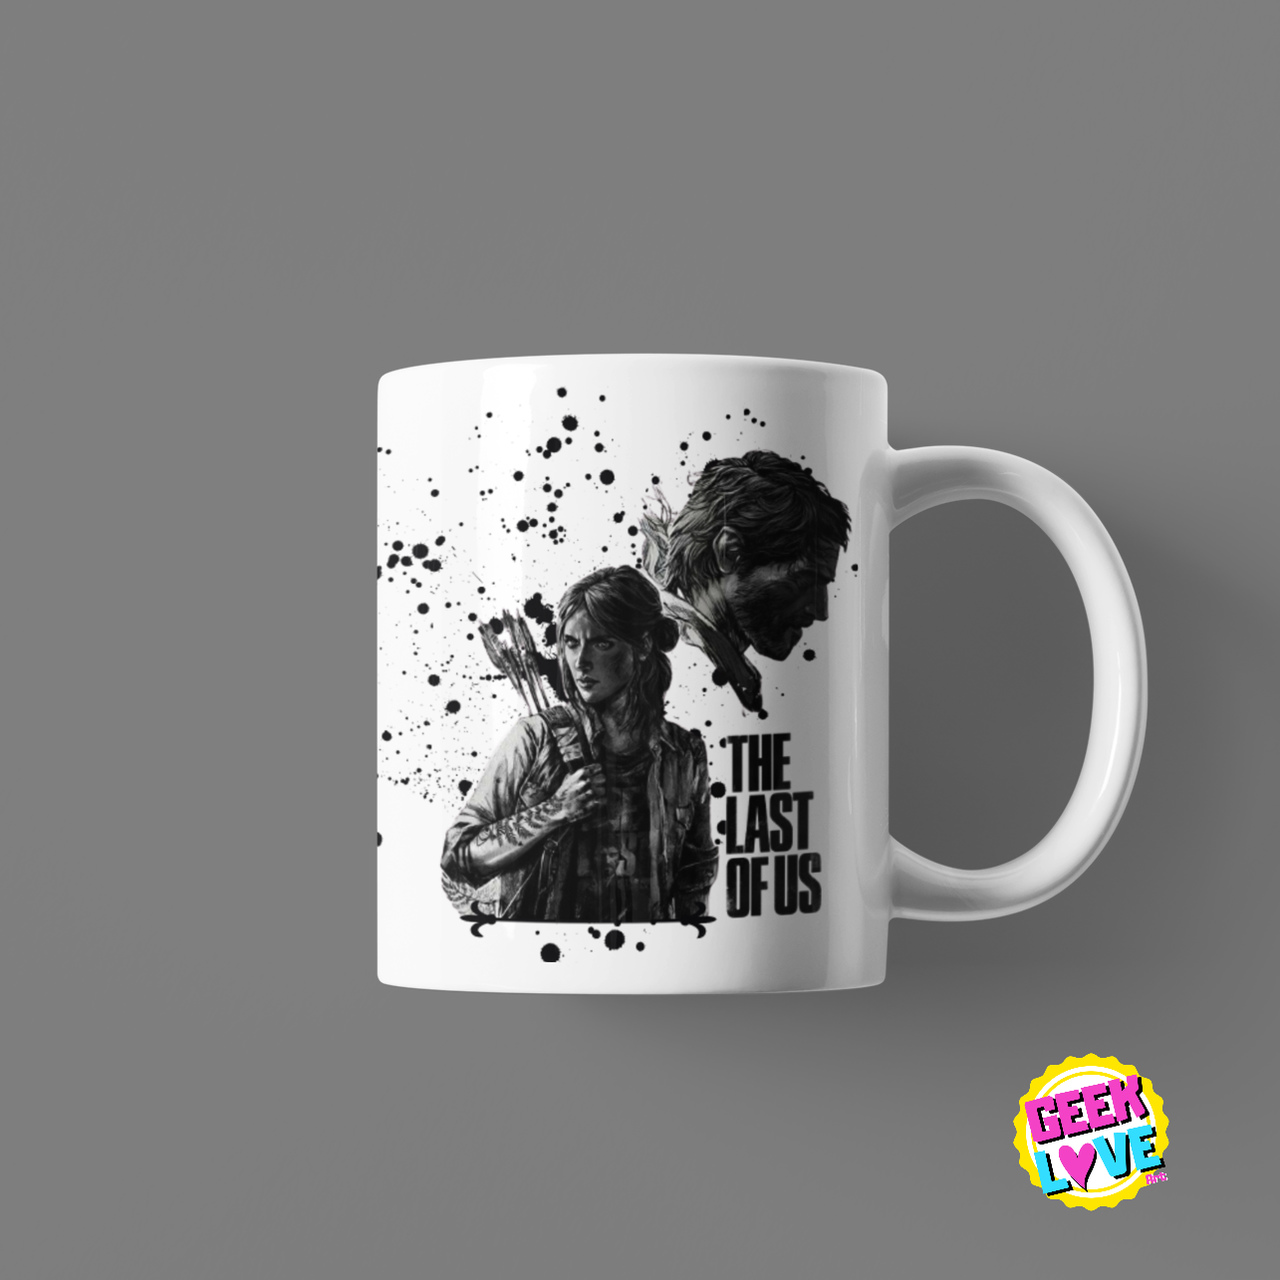 Caneca Geek Love - The Last of Us